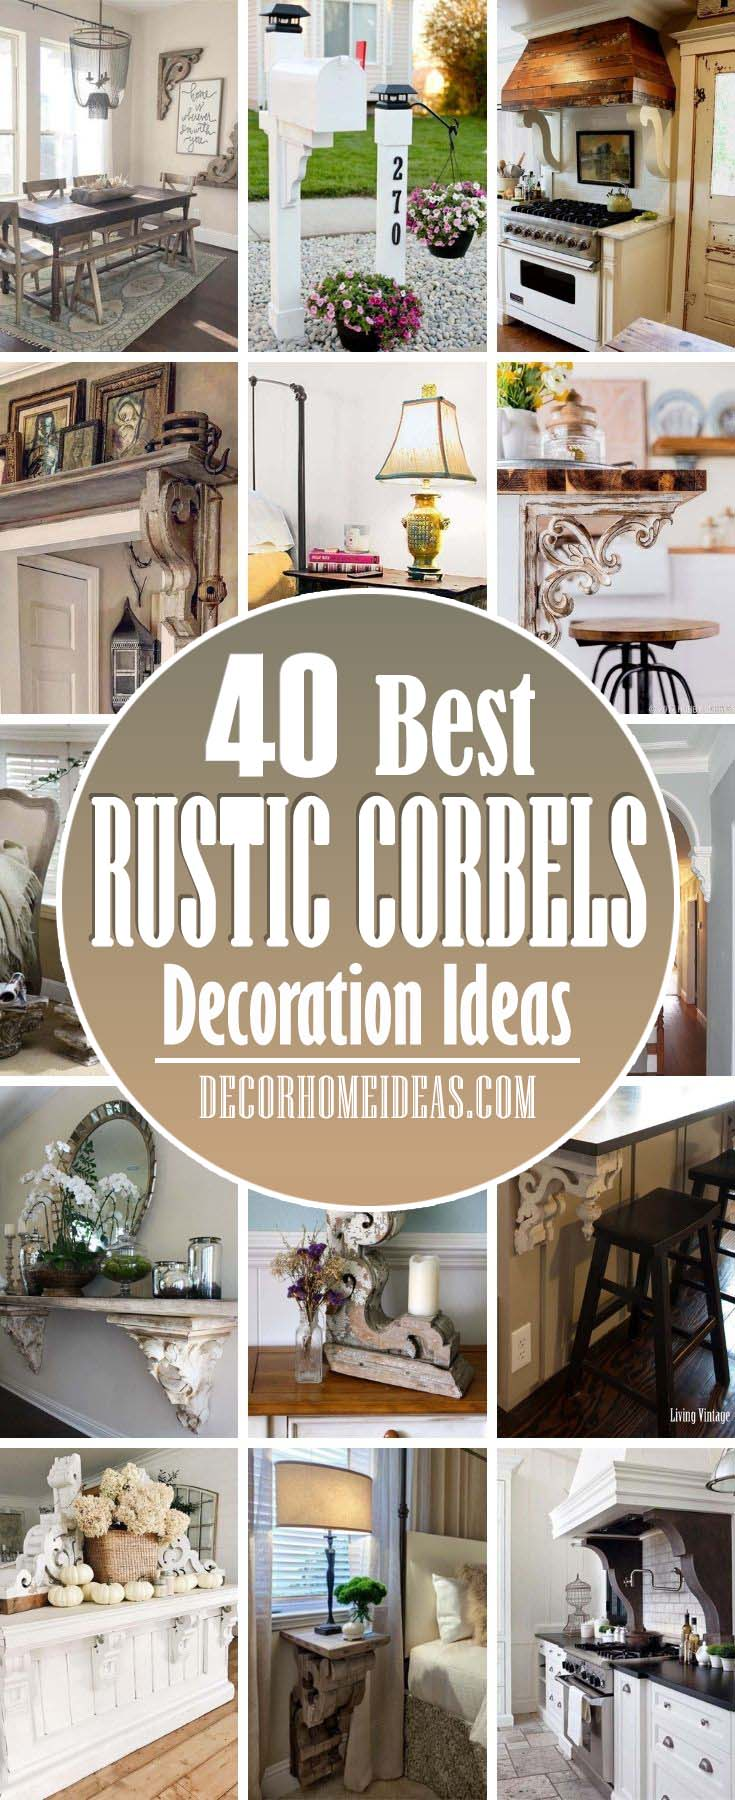 Best Decorating Ideas With Rustic Corbels. Vintage corbels that once acted as architectural accents get a second chance as farmhouse decor. These formerly weight-bearing brackets look great. #decorhomeideas